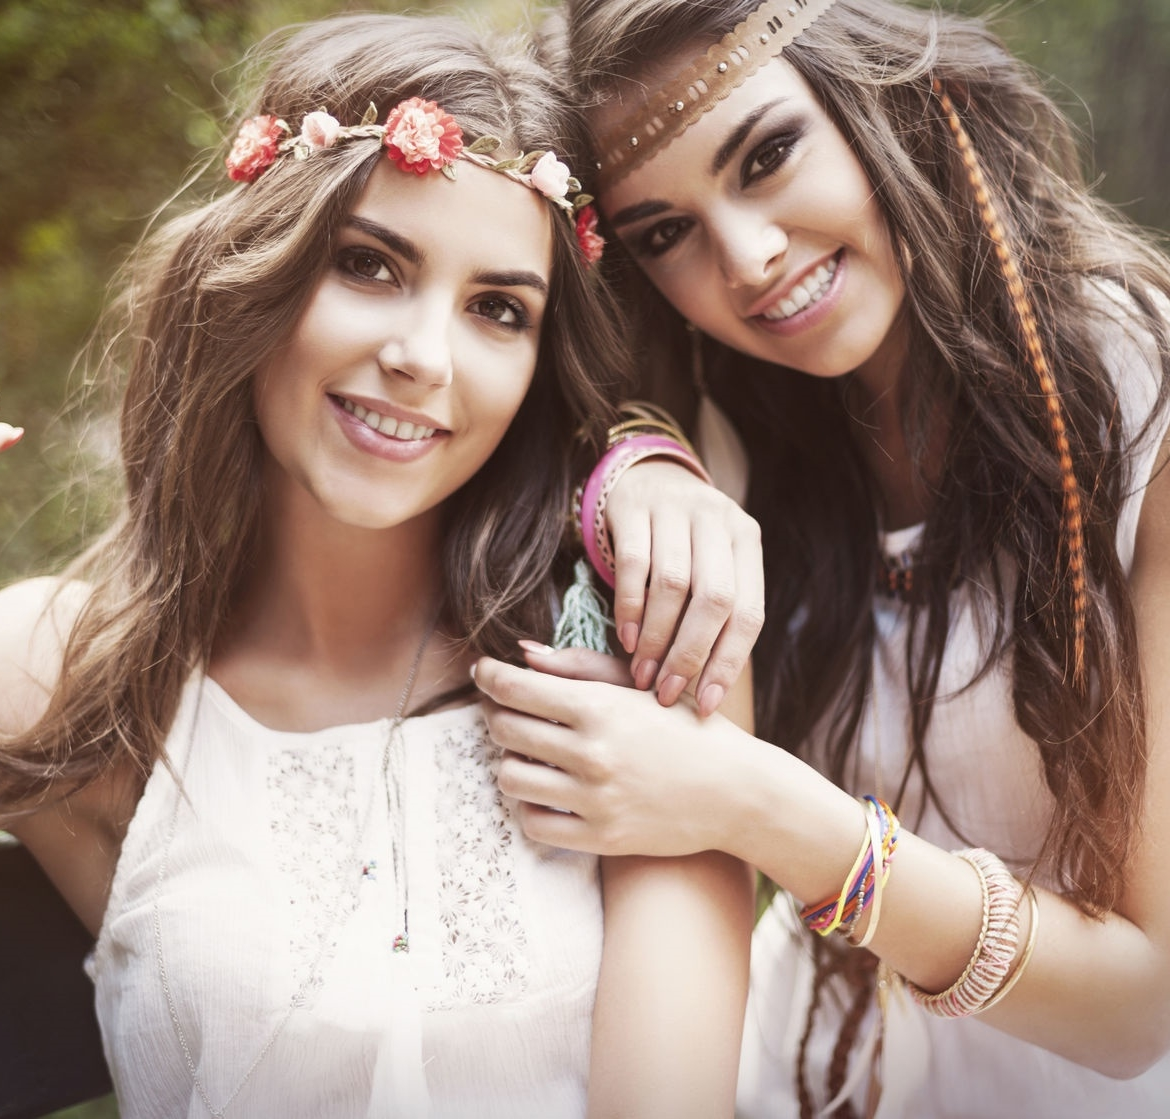 two girls at a festival wearing boho rompers